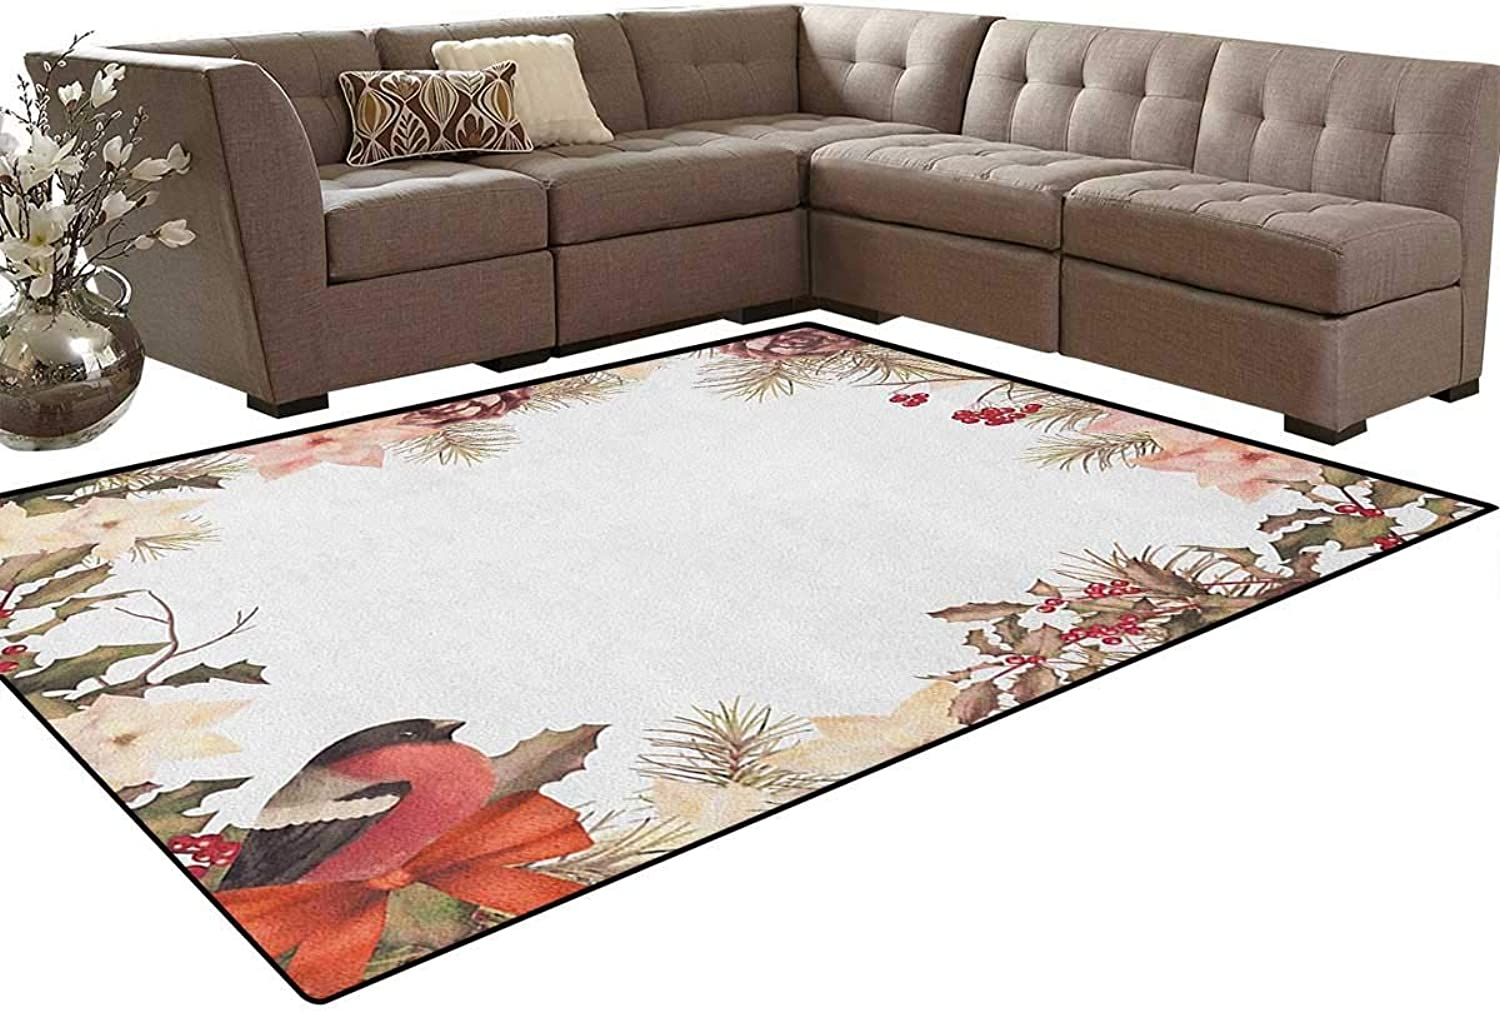 Eurasian Bullfinch Motif with Cedar Branch Holly Berries Vintage Floor Mat Rug Indoor Front Door Kitchen and Living Room Bedroom Mats Rubber Non Slip